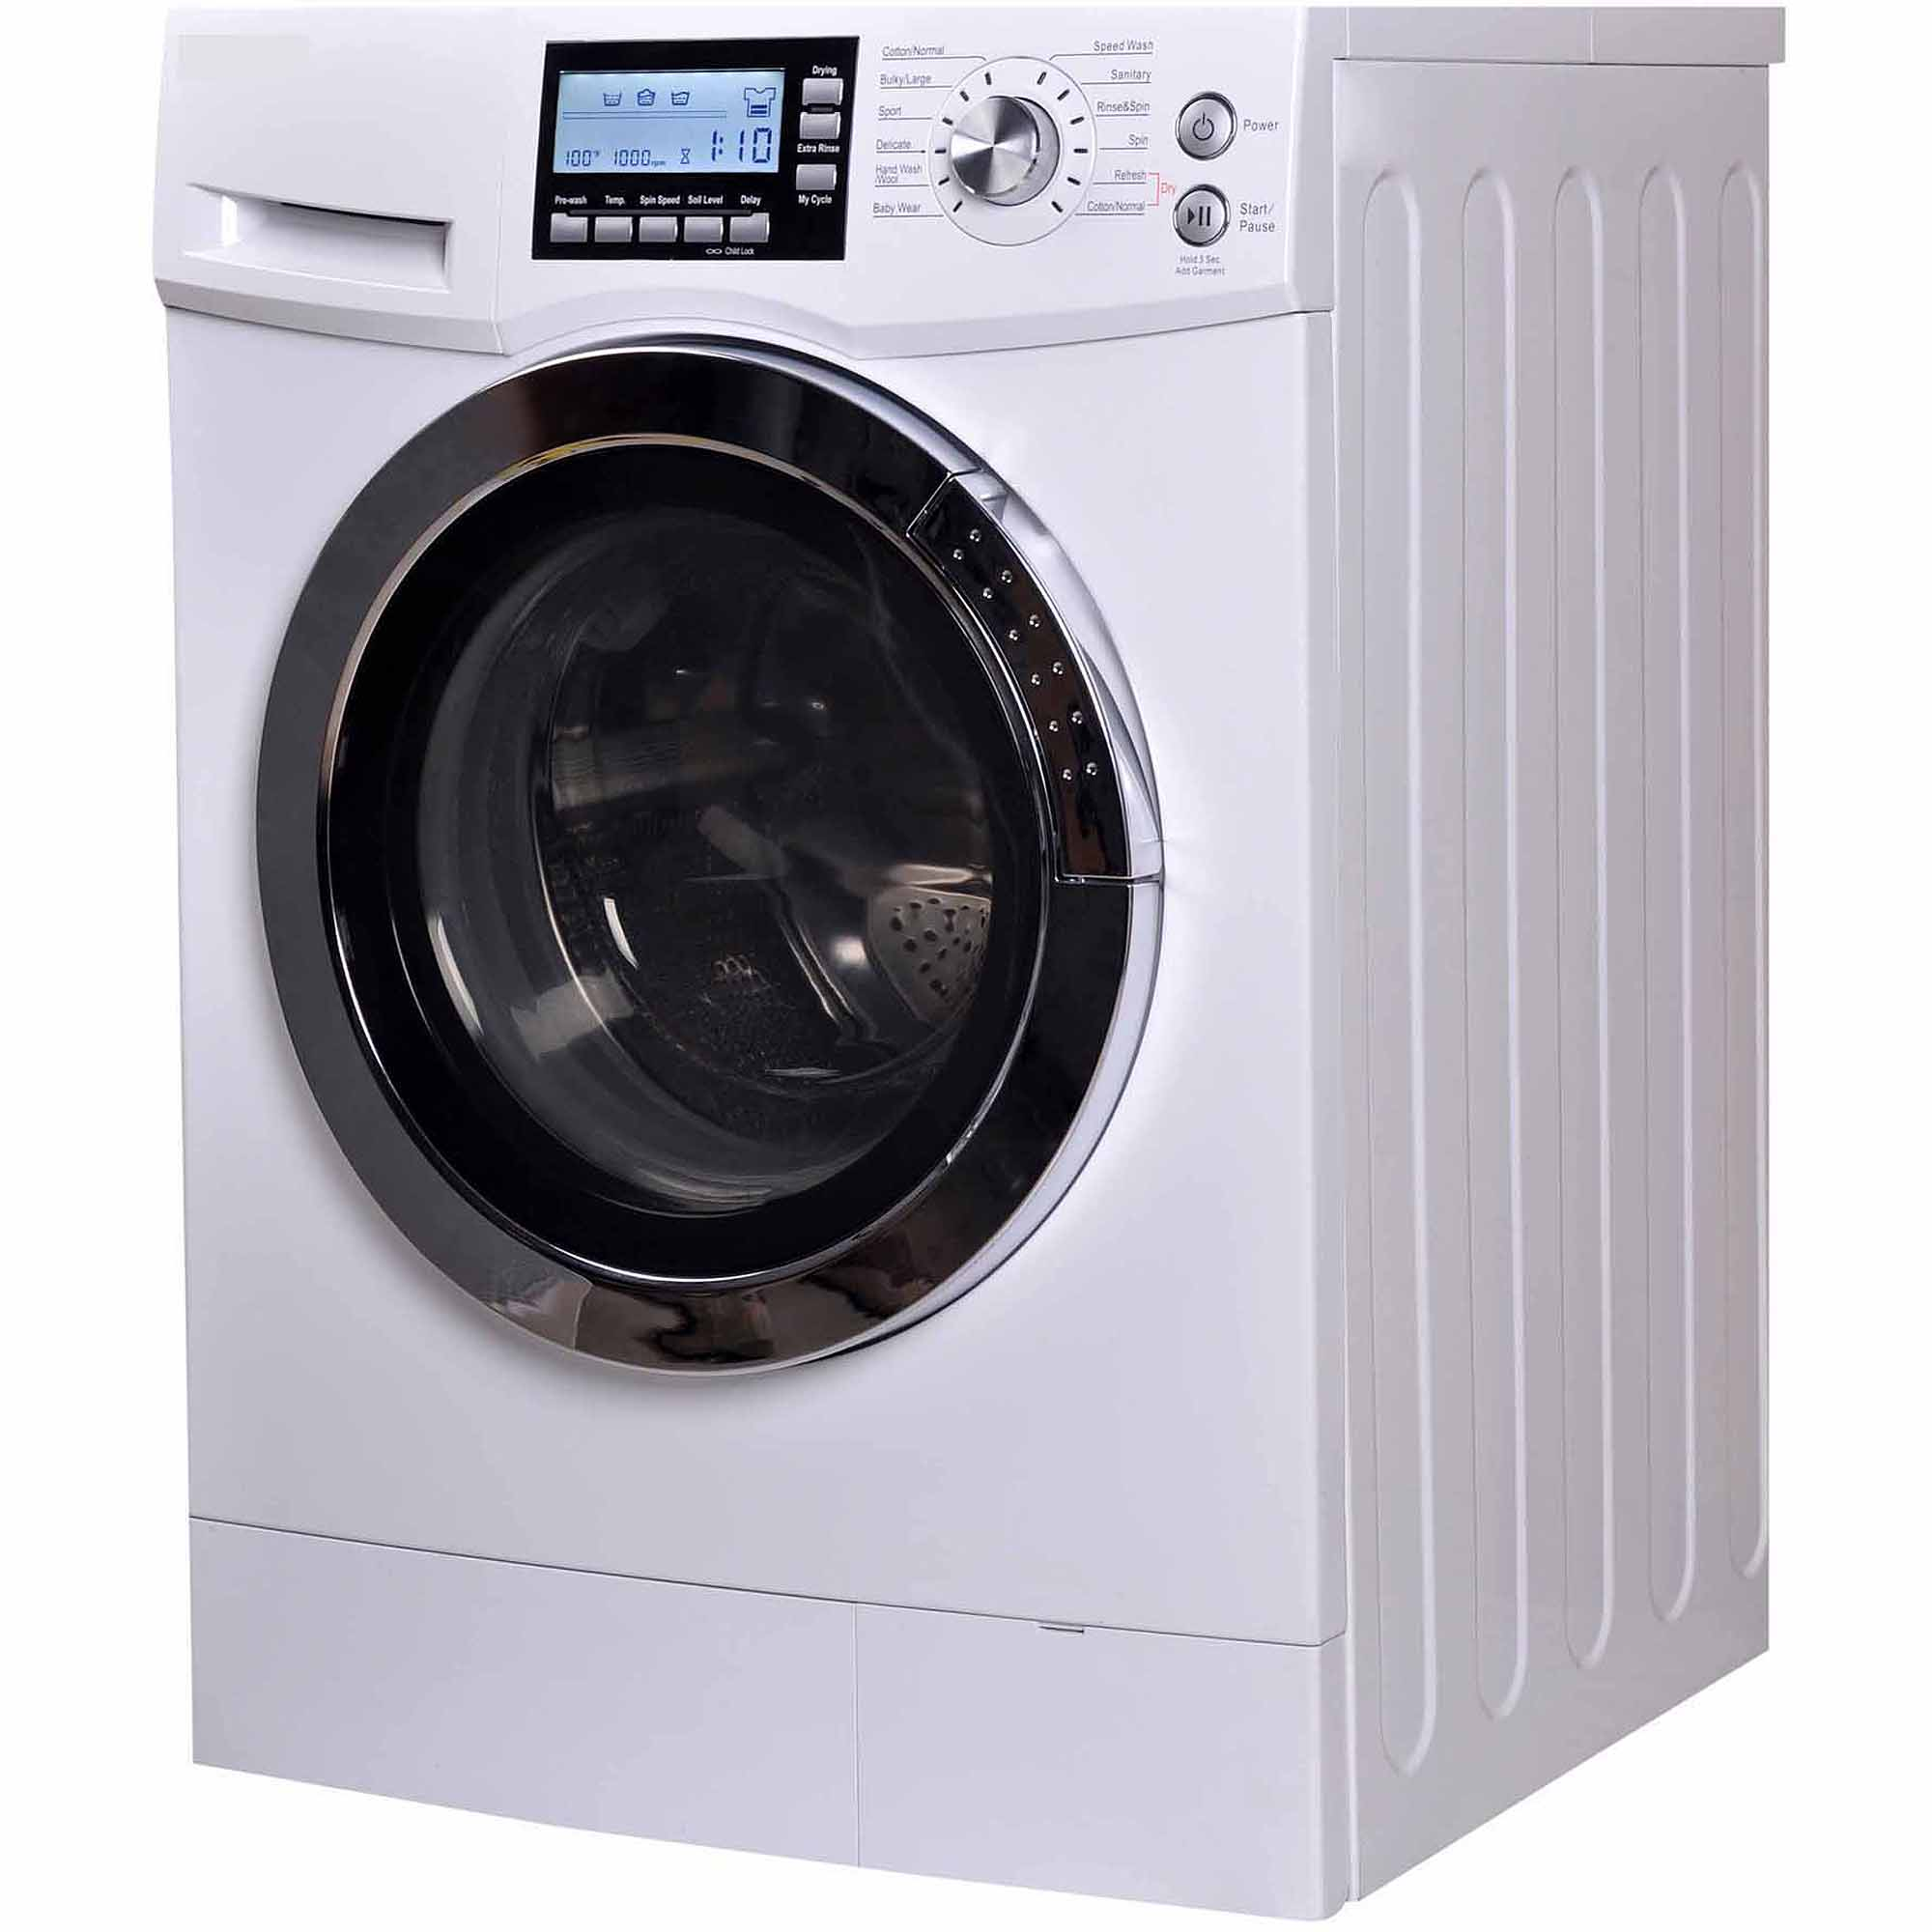 Lg 2 3 cu ft all in one washer and dryer - Rca 2 0 Cu Ft Front Loading Combo White